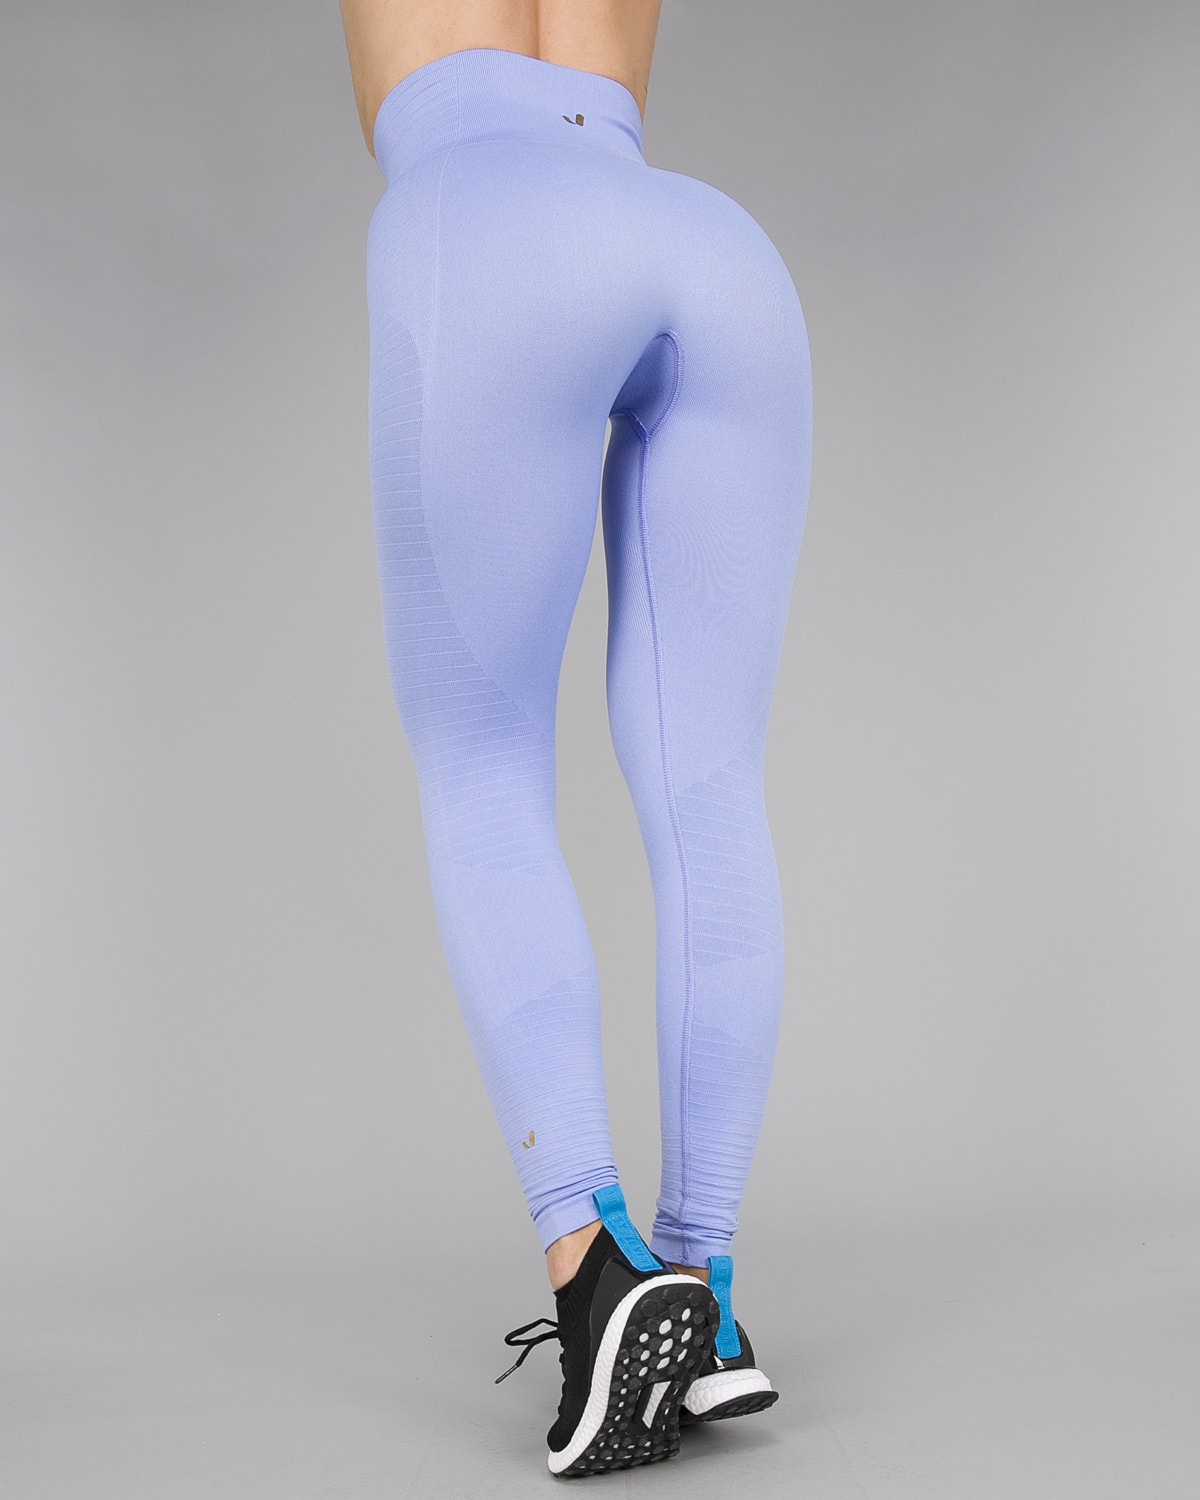 Jerf Gela 2.0 Tights Blue Pastel1